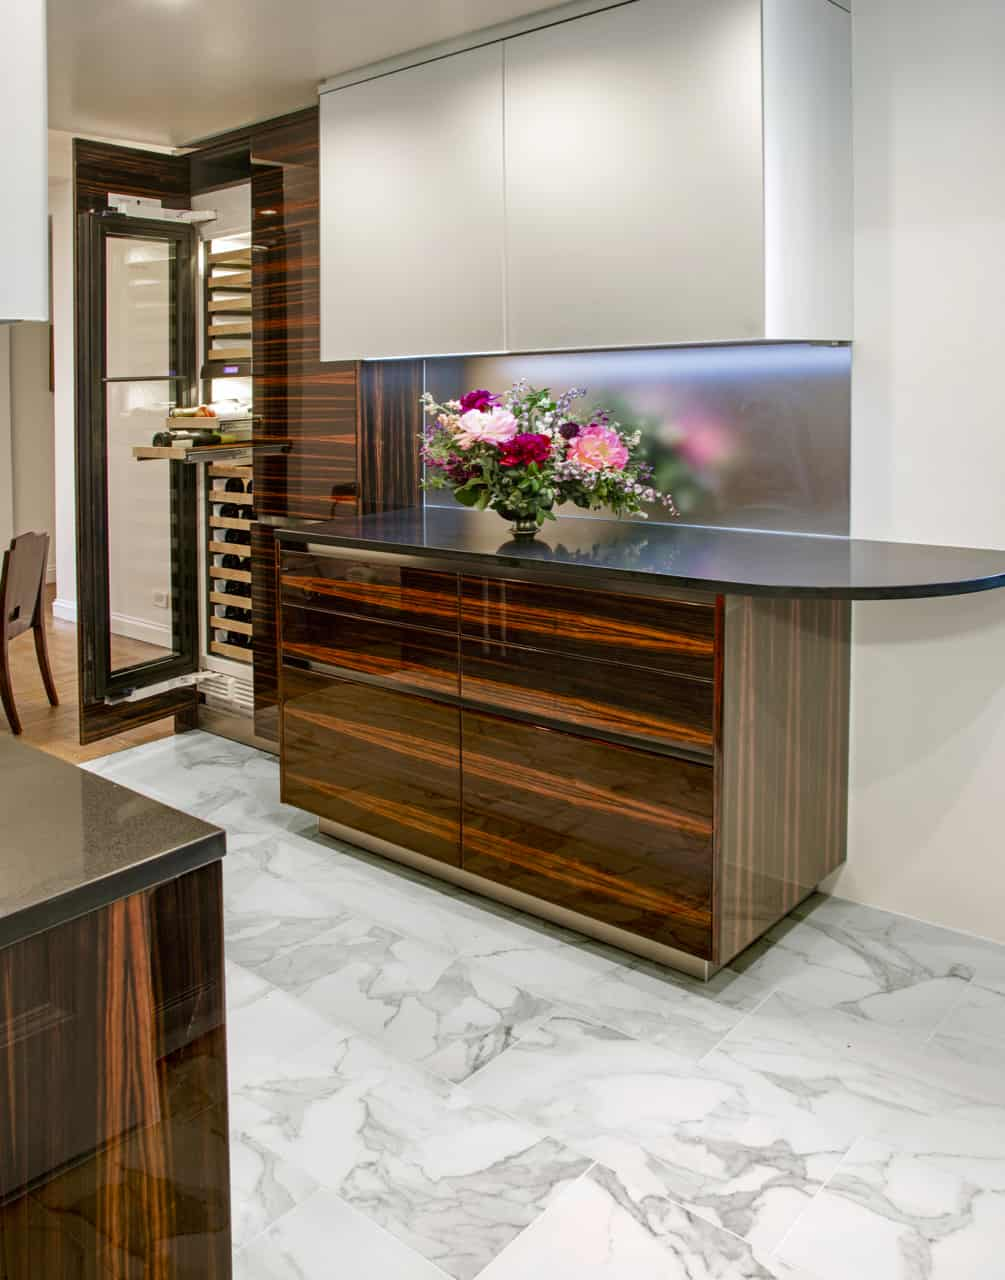 maccassar ebony cabinetry in high gloss finish with white mirror finish upper cabinets